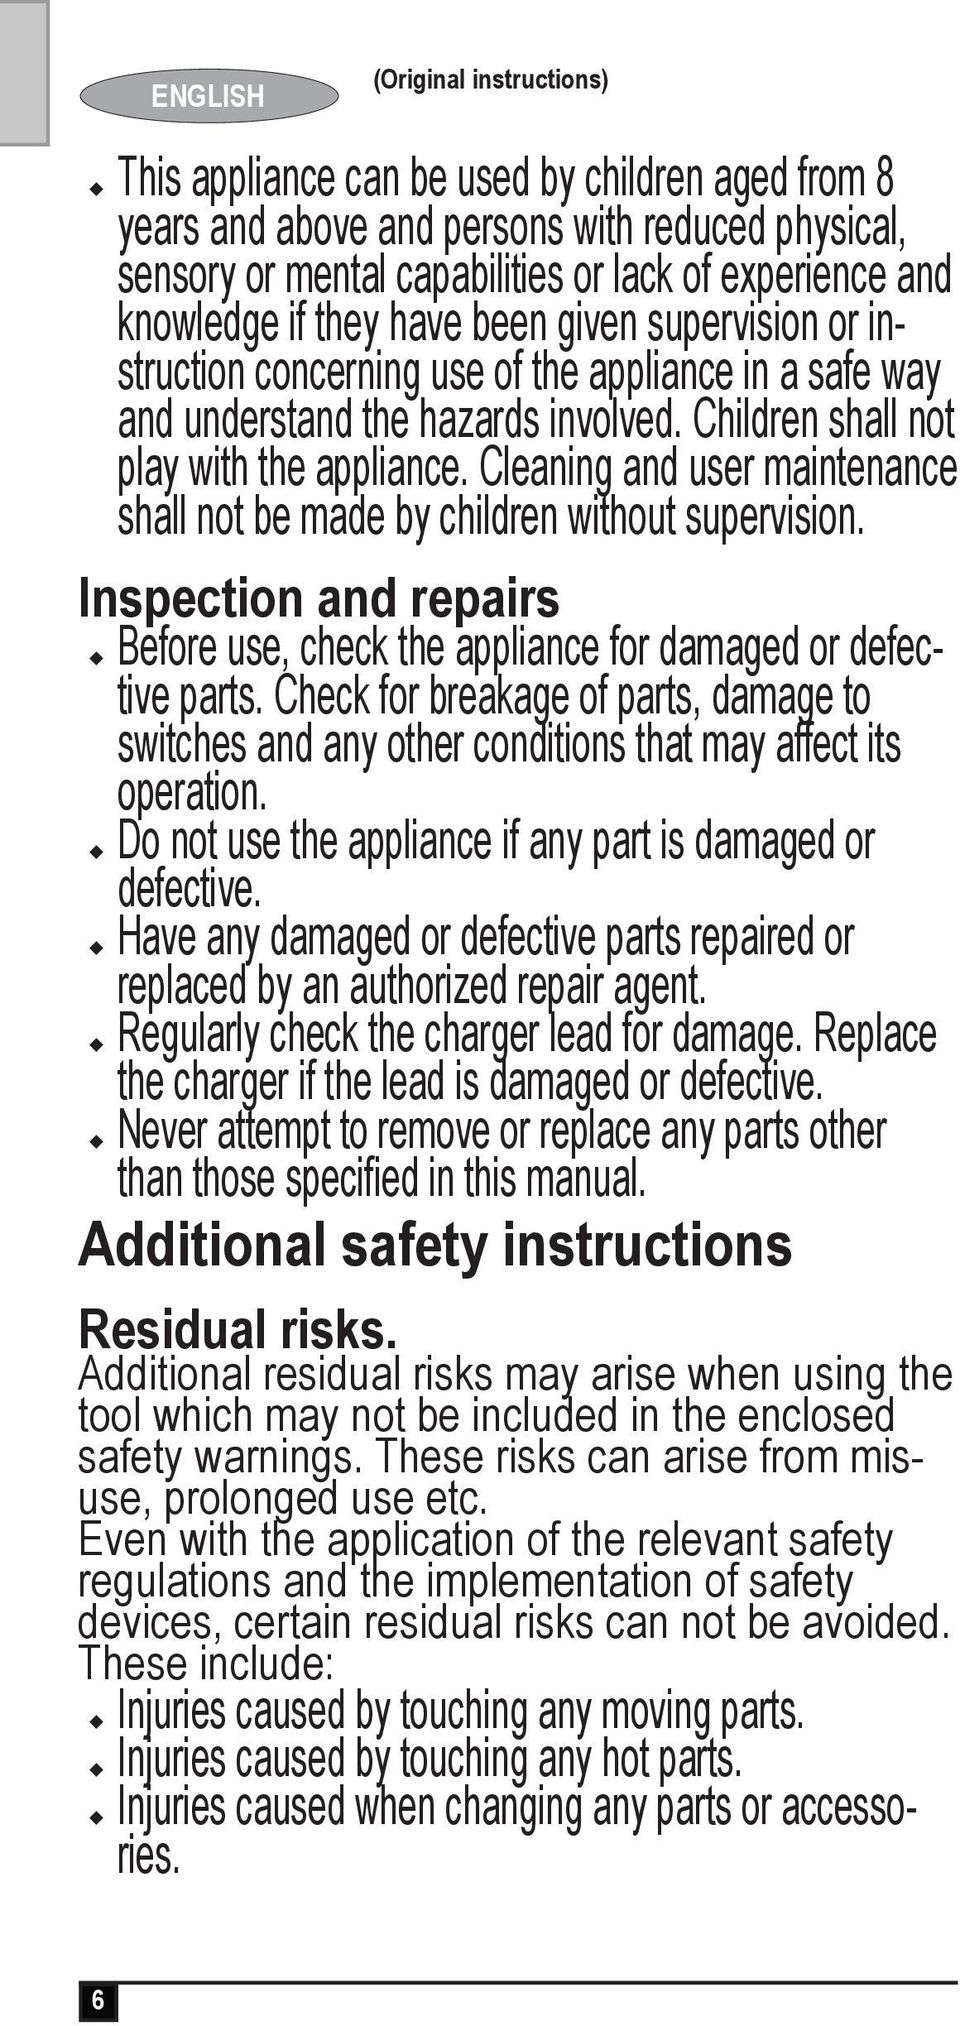 Cleaning and user maintenance shall not be made by children without supervision. Inspection and repairs u Before use, check the appliance for damaged or defective parts.